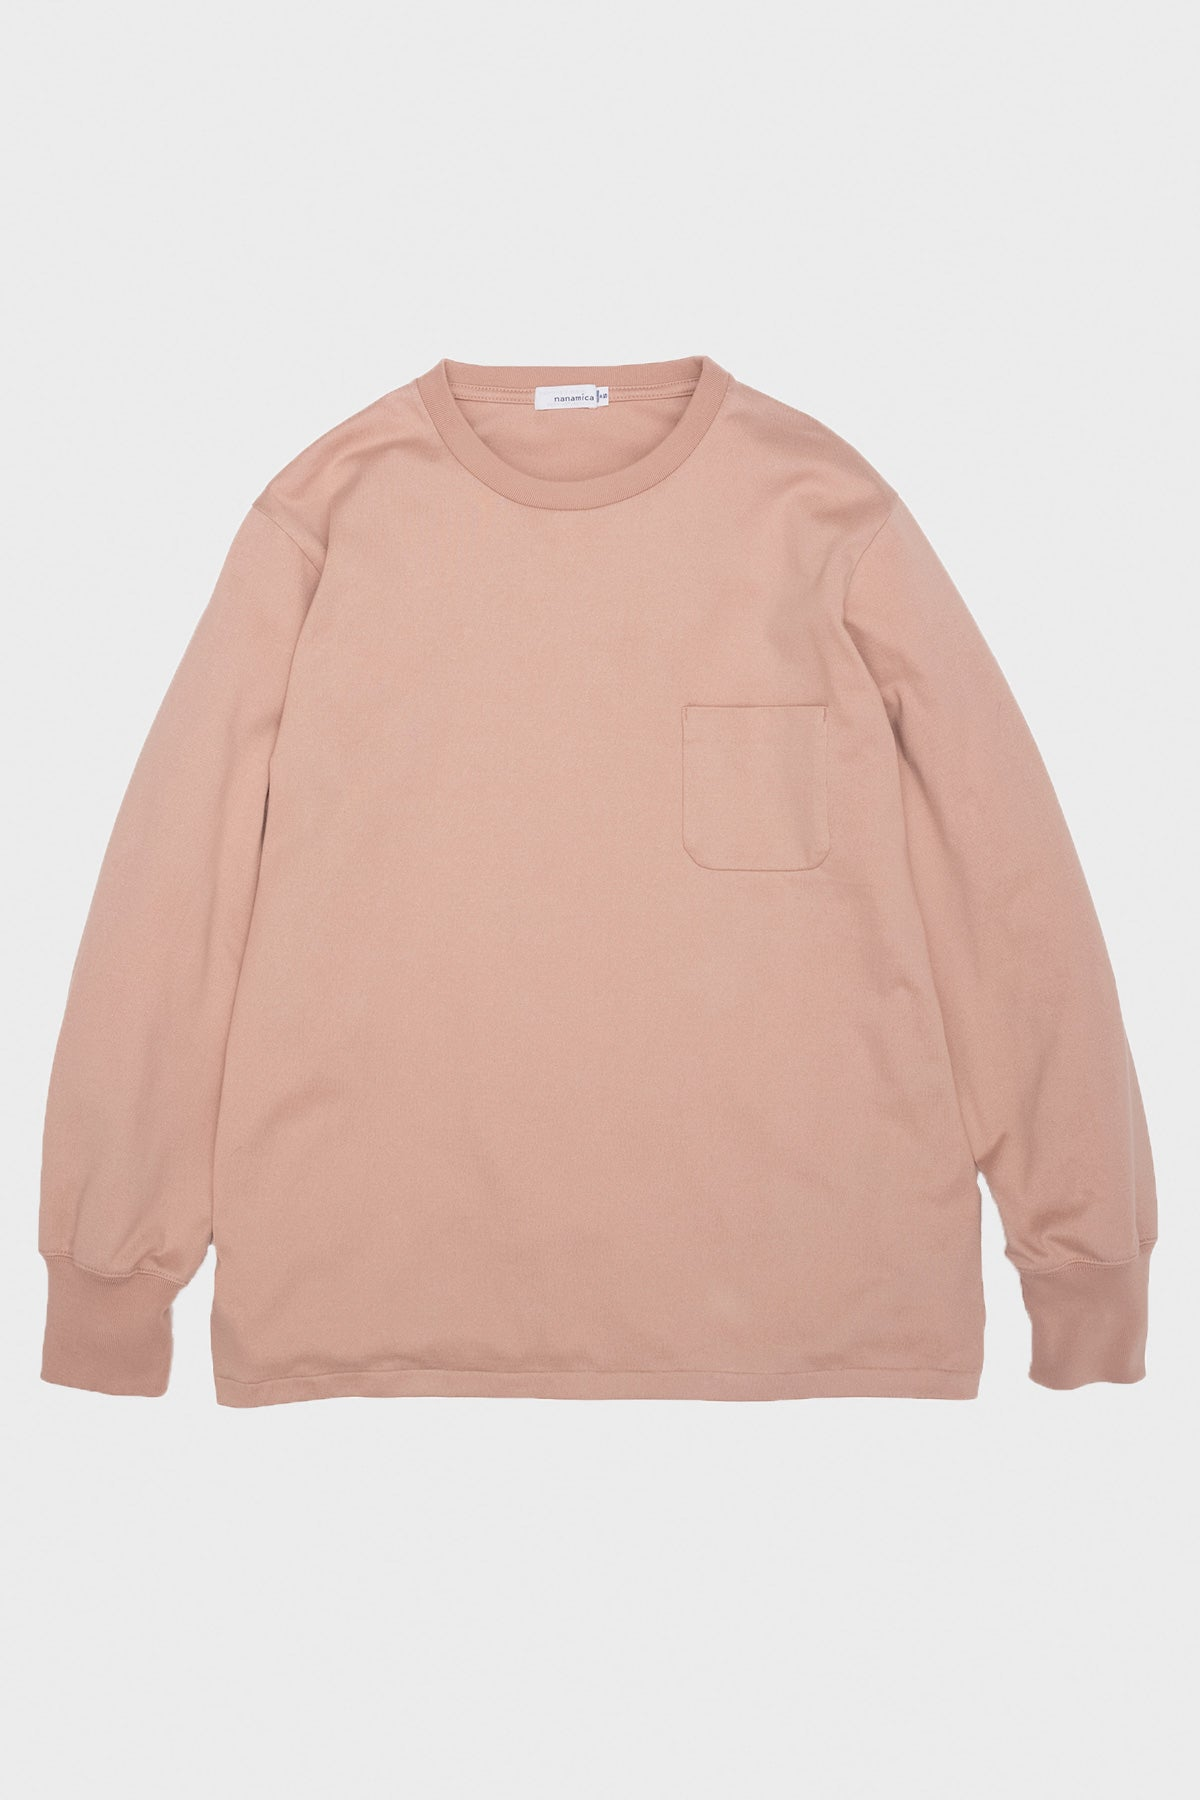 nanamica - Long Sleeve Pocket Tee - Light Pink - Canoe Club